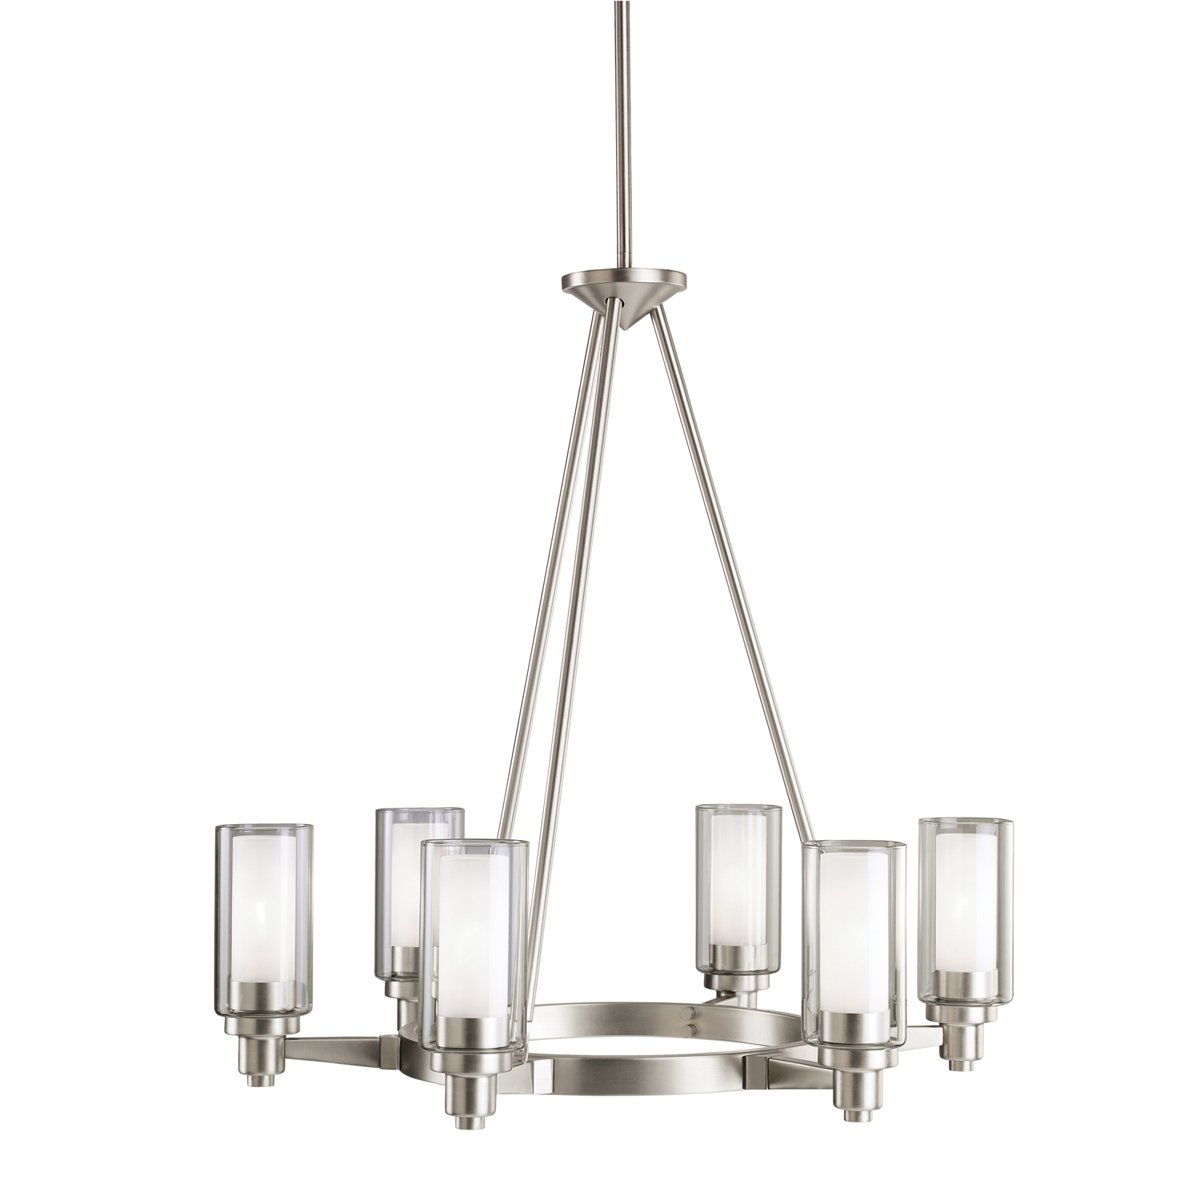 Kichler 2344ni six light chandelier amazon aloadofball Choice Image